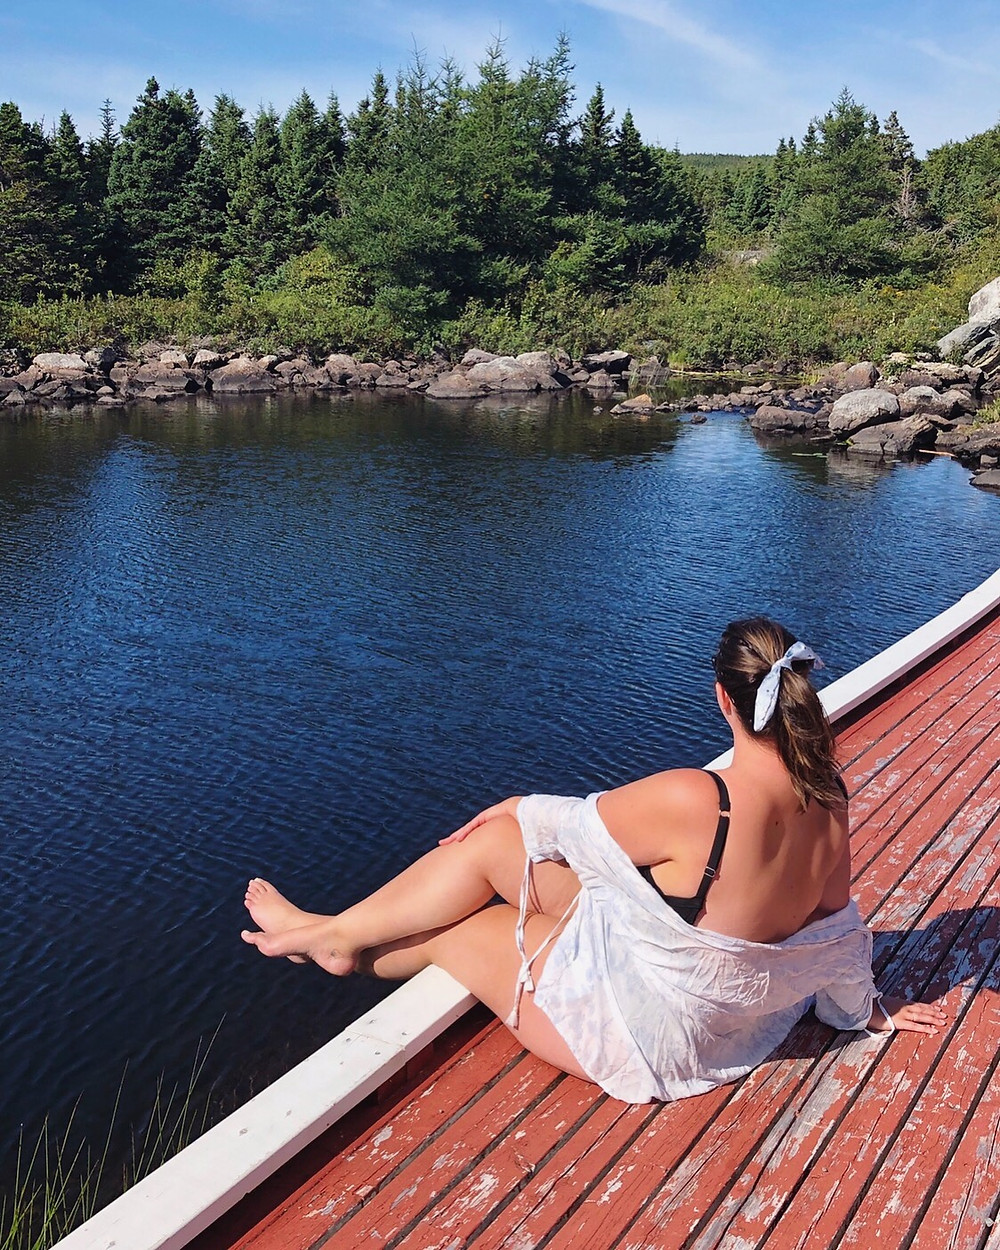 woman sitting on the edge of a dock in her bathing suit about to go swimming